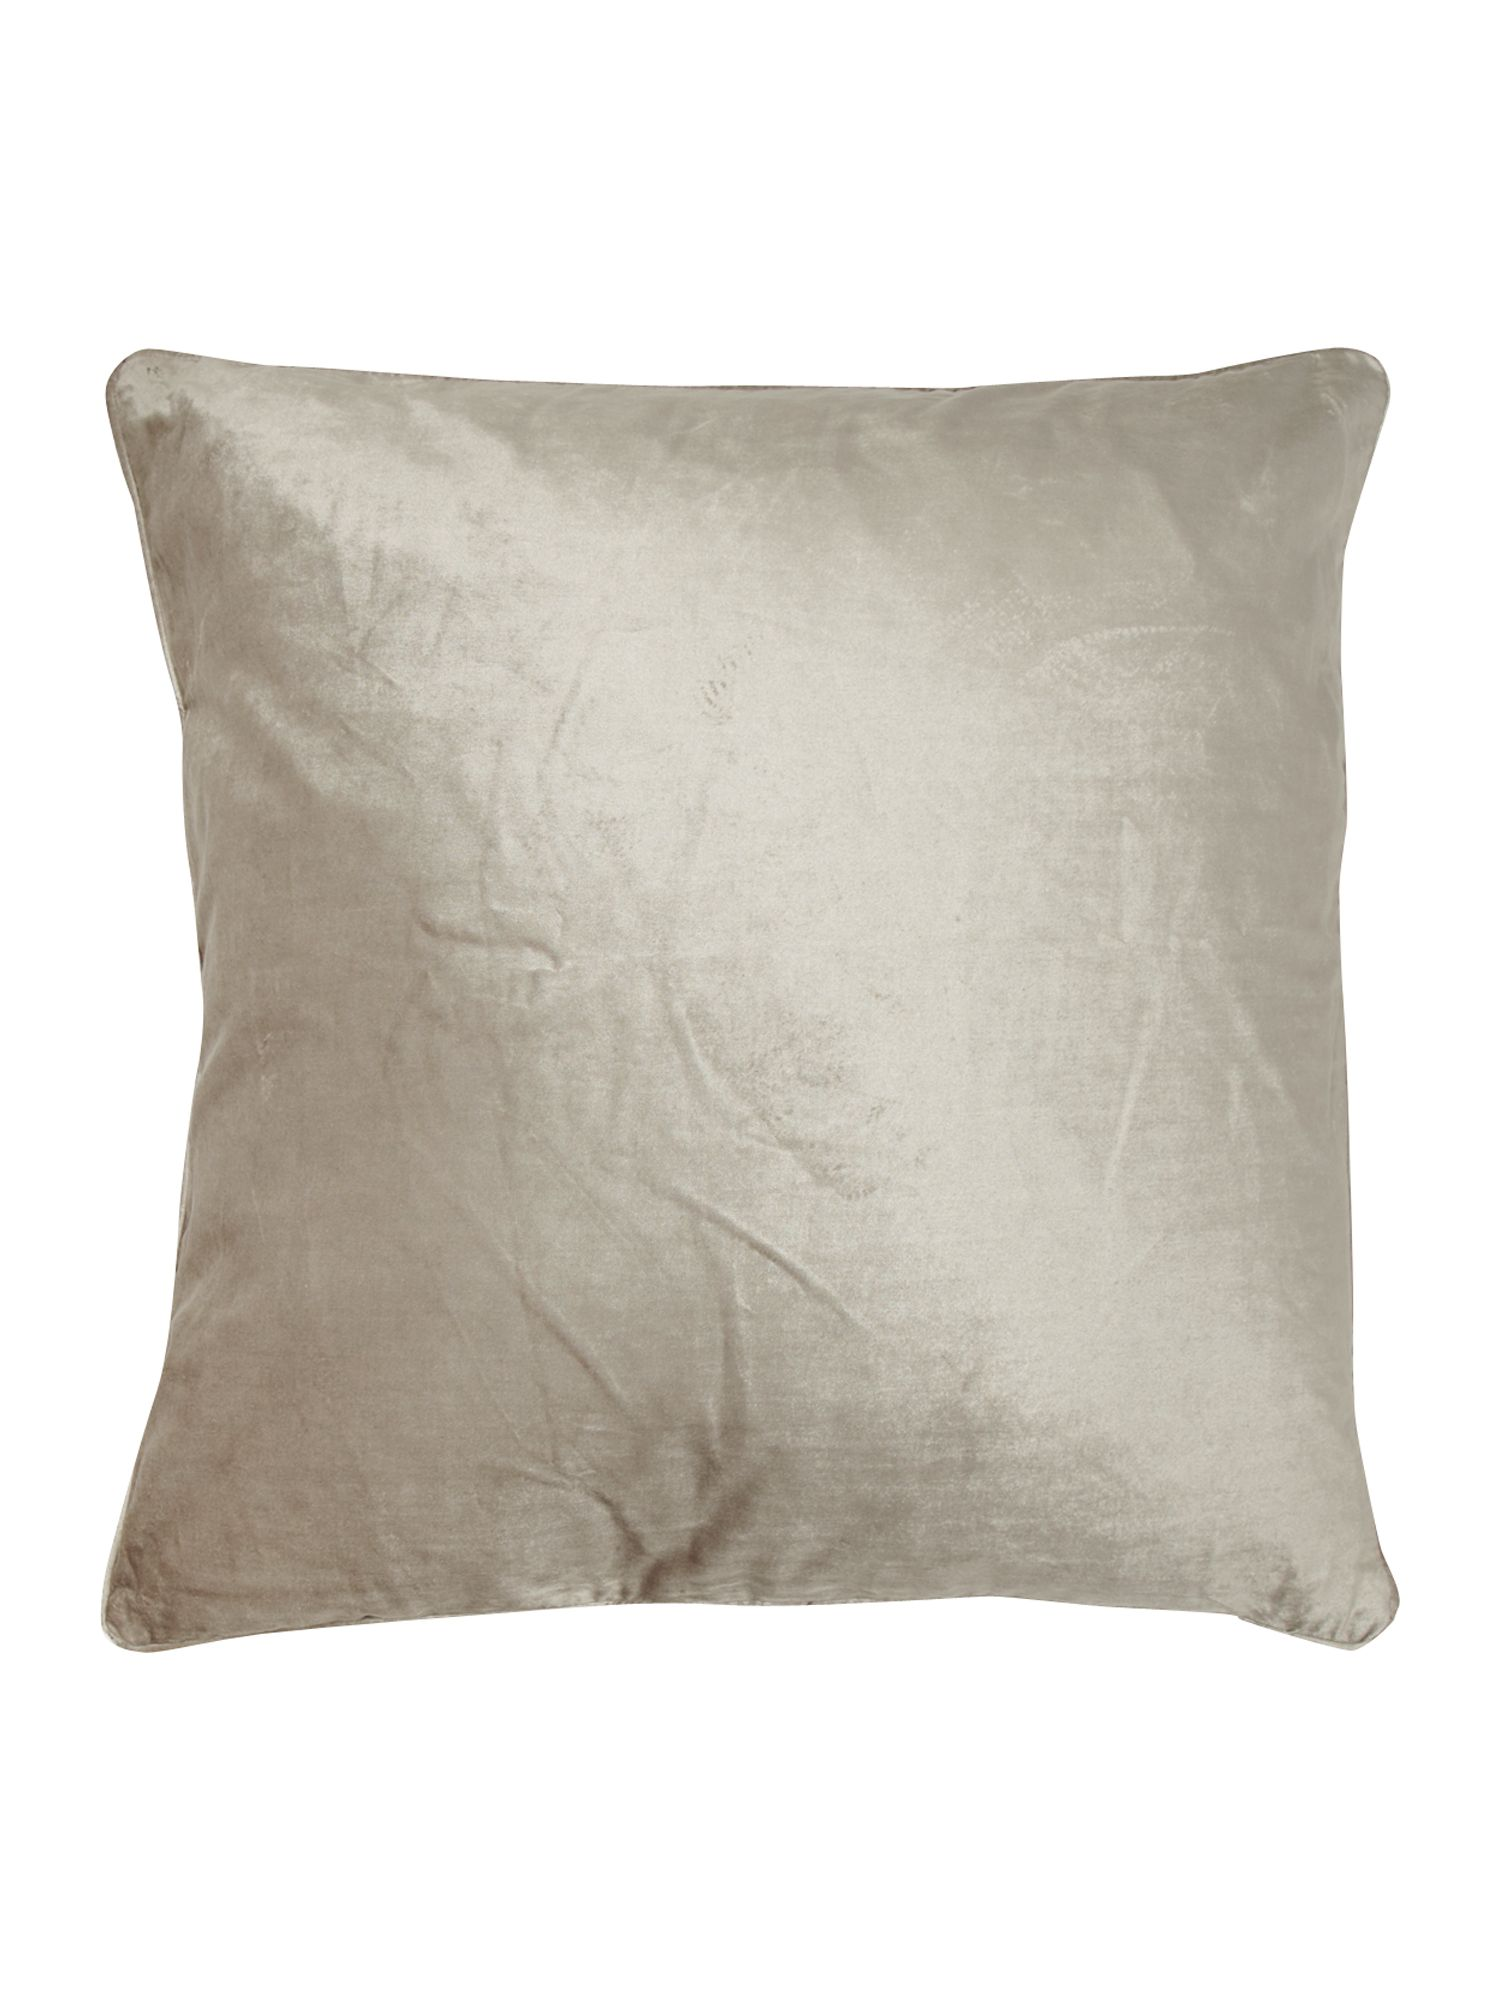 Oversized grey velvet cushion